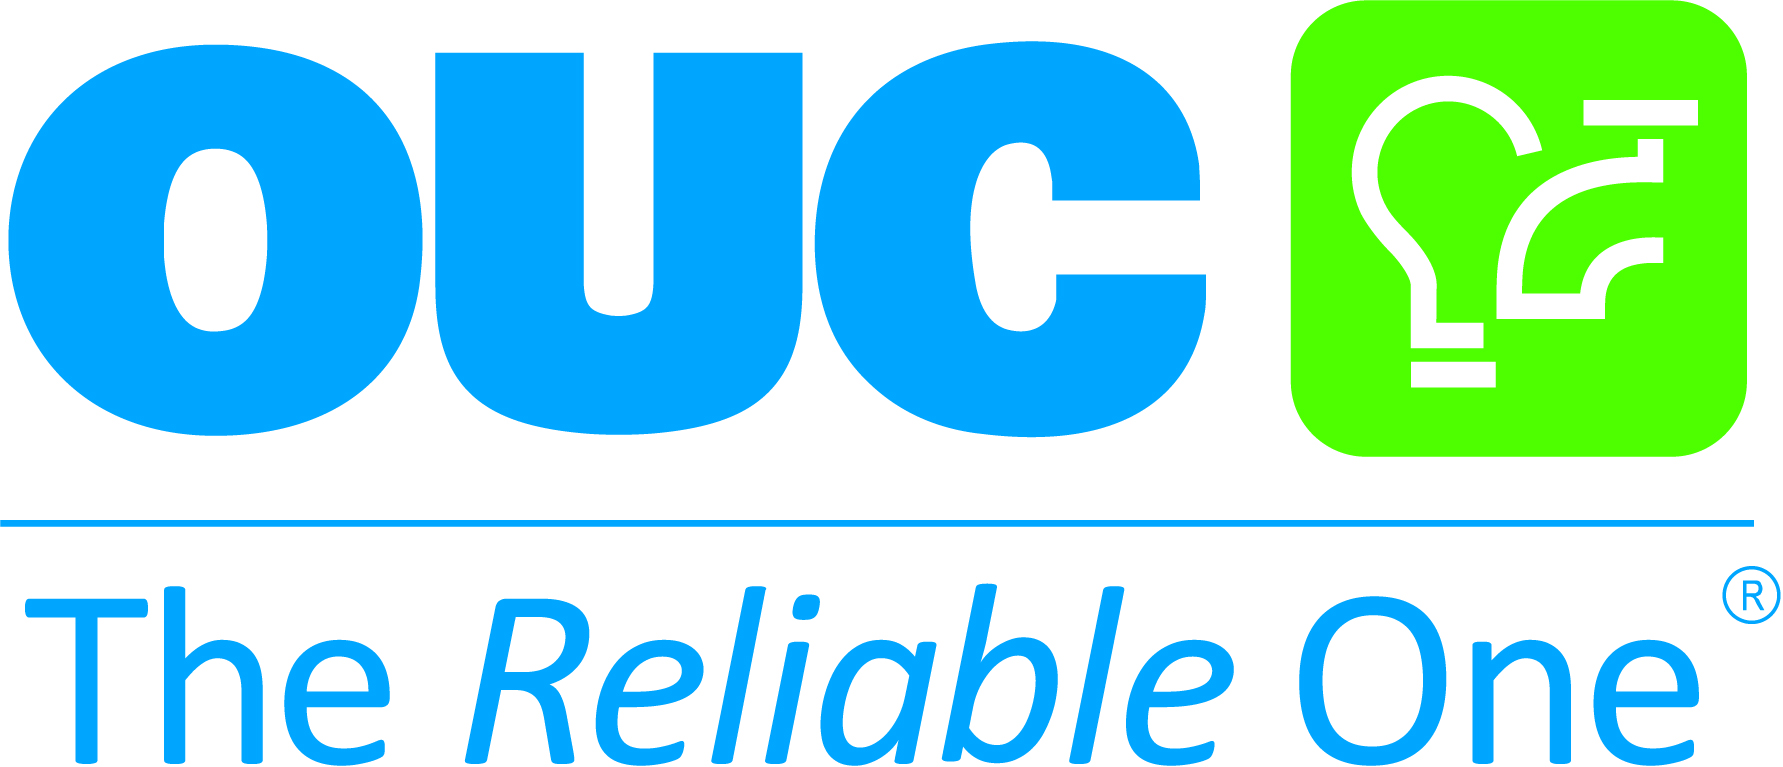 OUC- The Reliable One Image